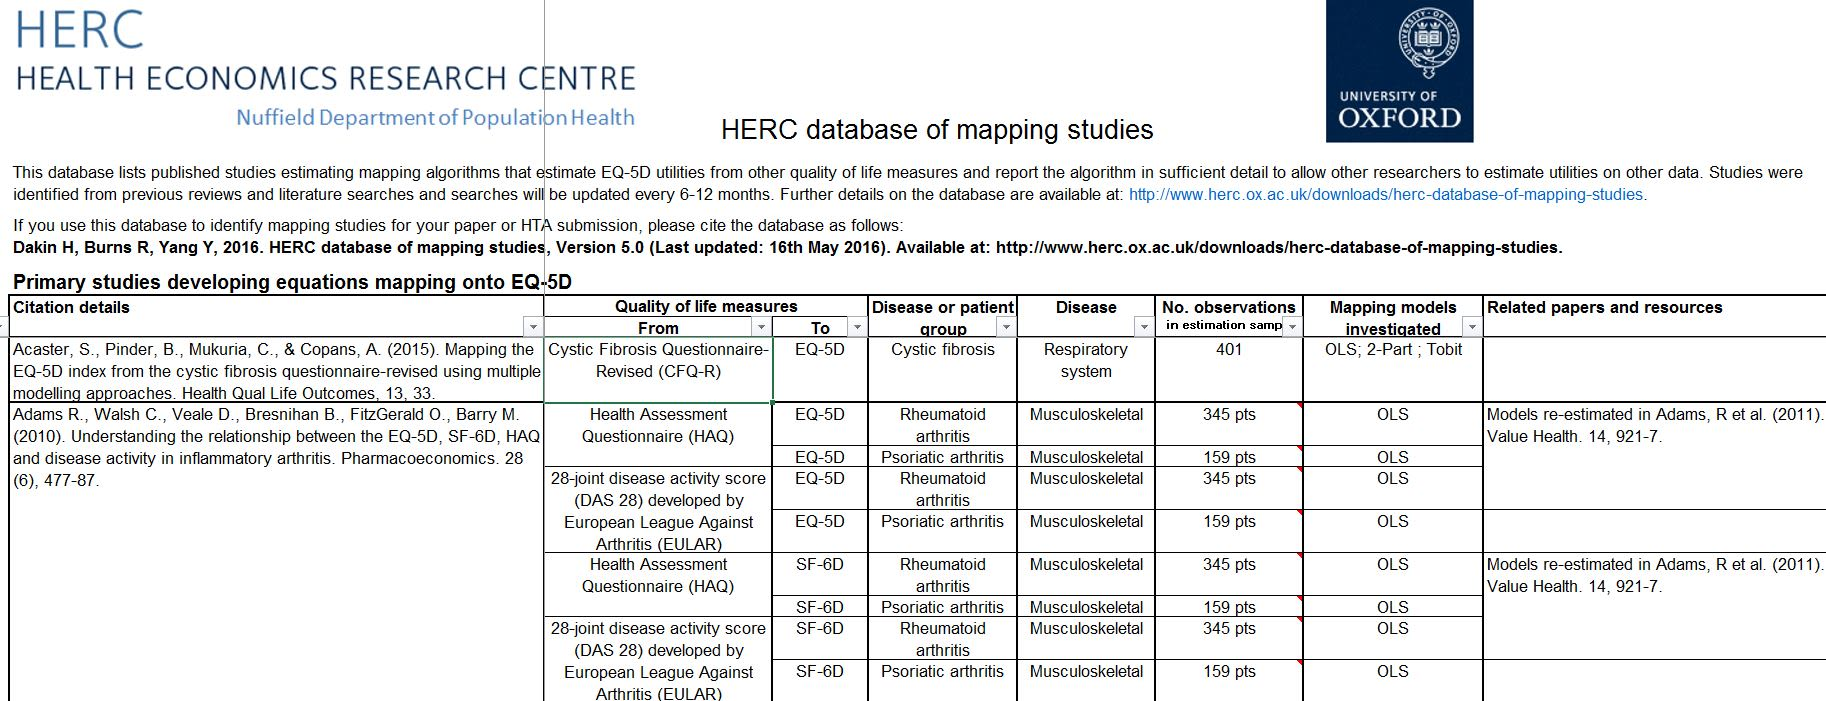 HERC database of mapping studies version 5.0 - Now Available!